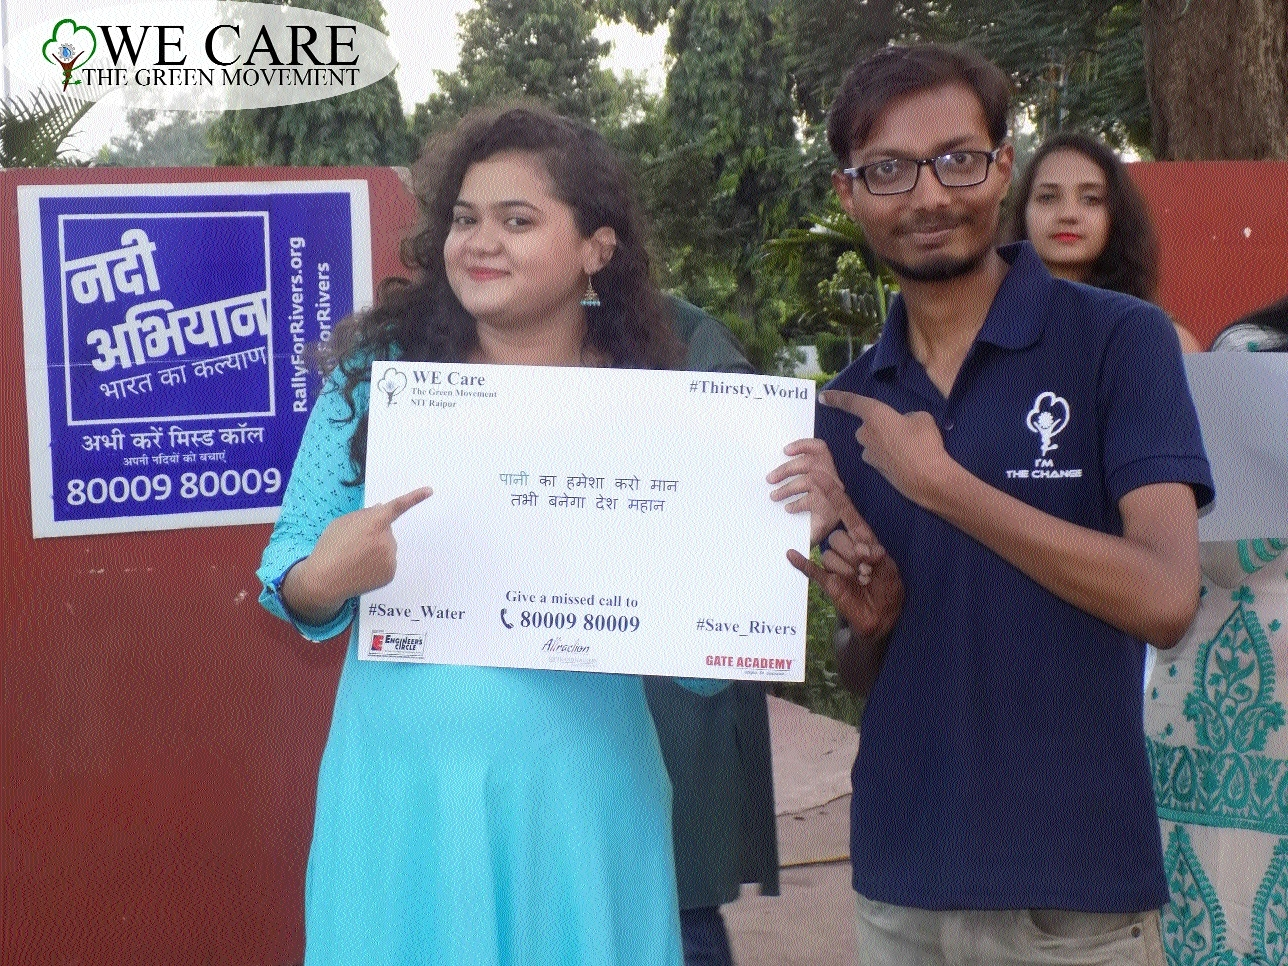 NIT Raipur supports Green Campaign